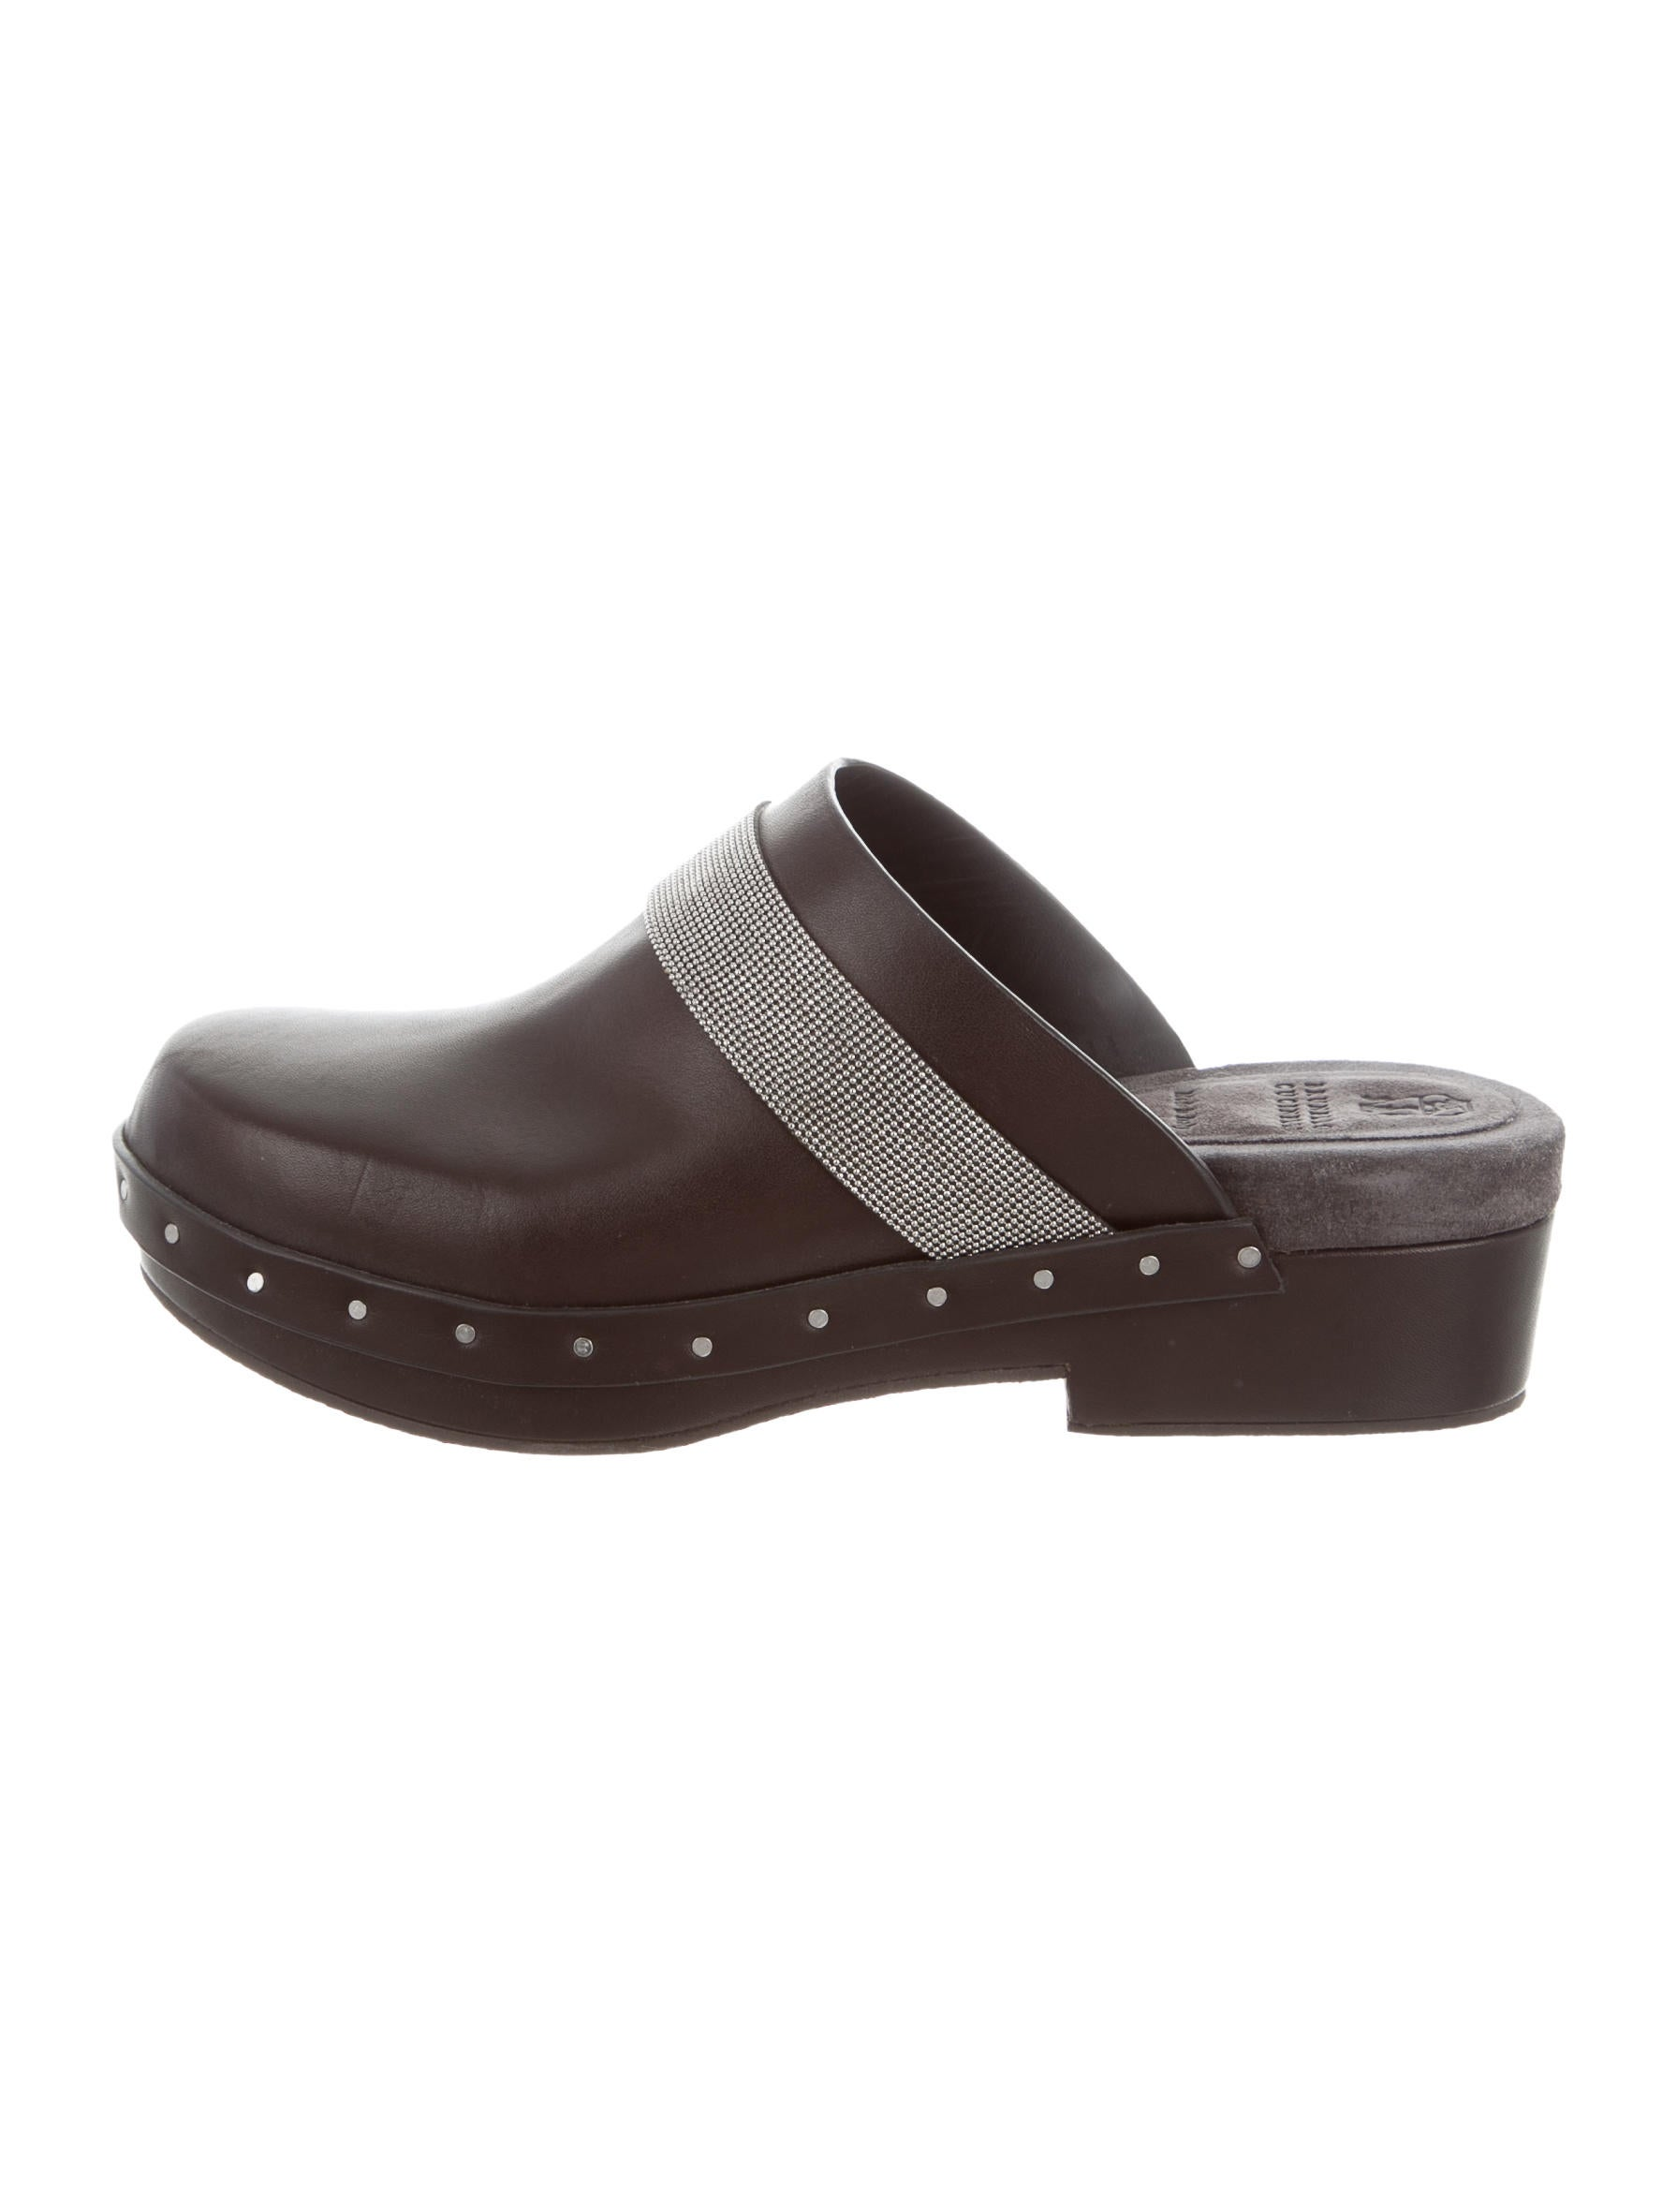 footlocker finishline for sale Brunello Cucinelli Leather Round-Toe Clogs buy online ebay sale online free shipping 100% guaranteed good selling cheap price 65uu59RD